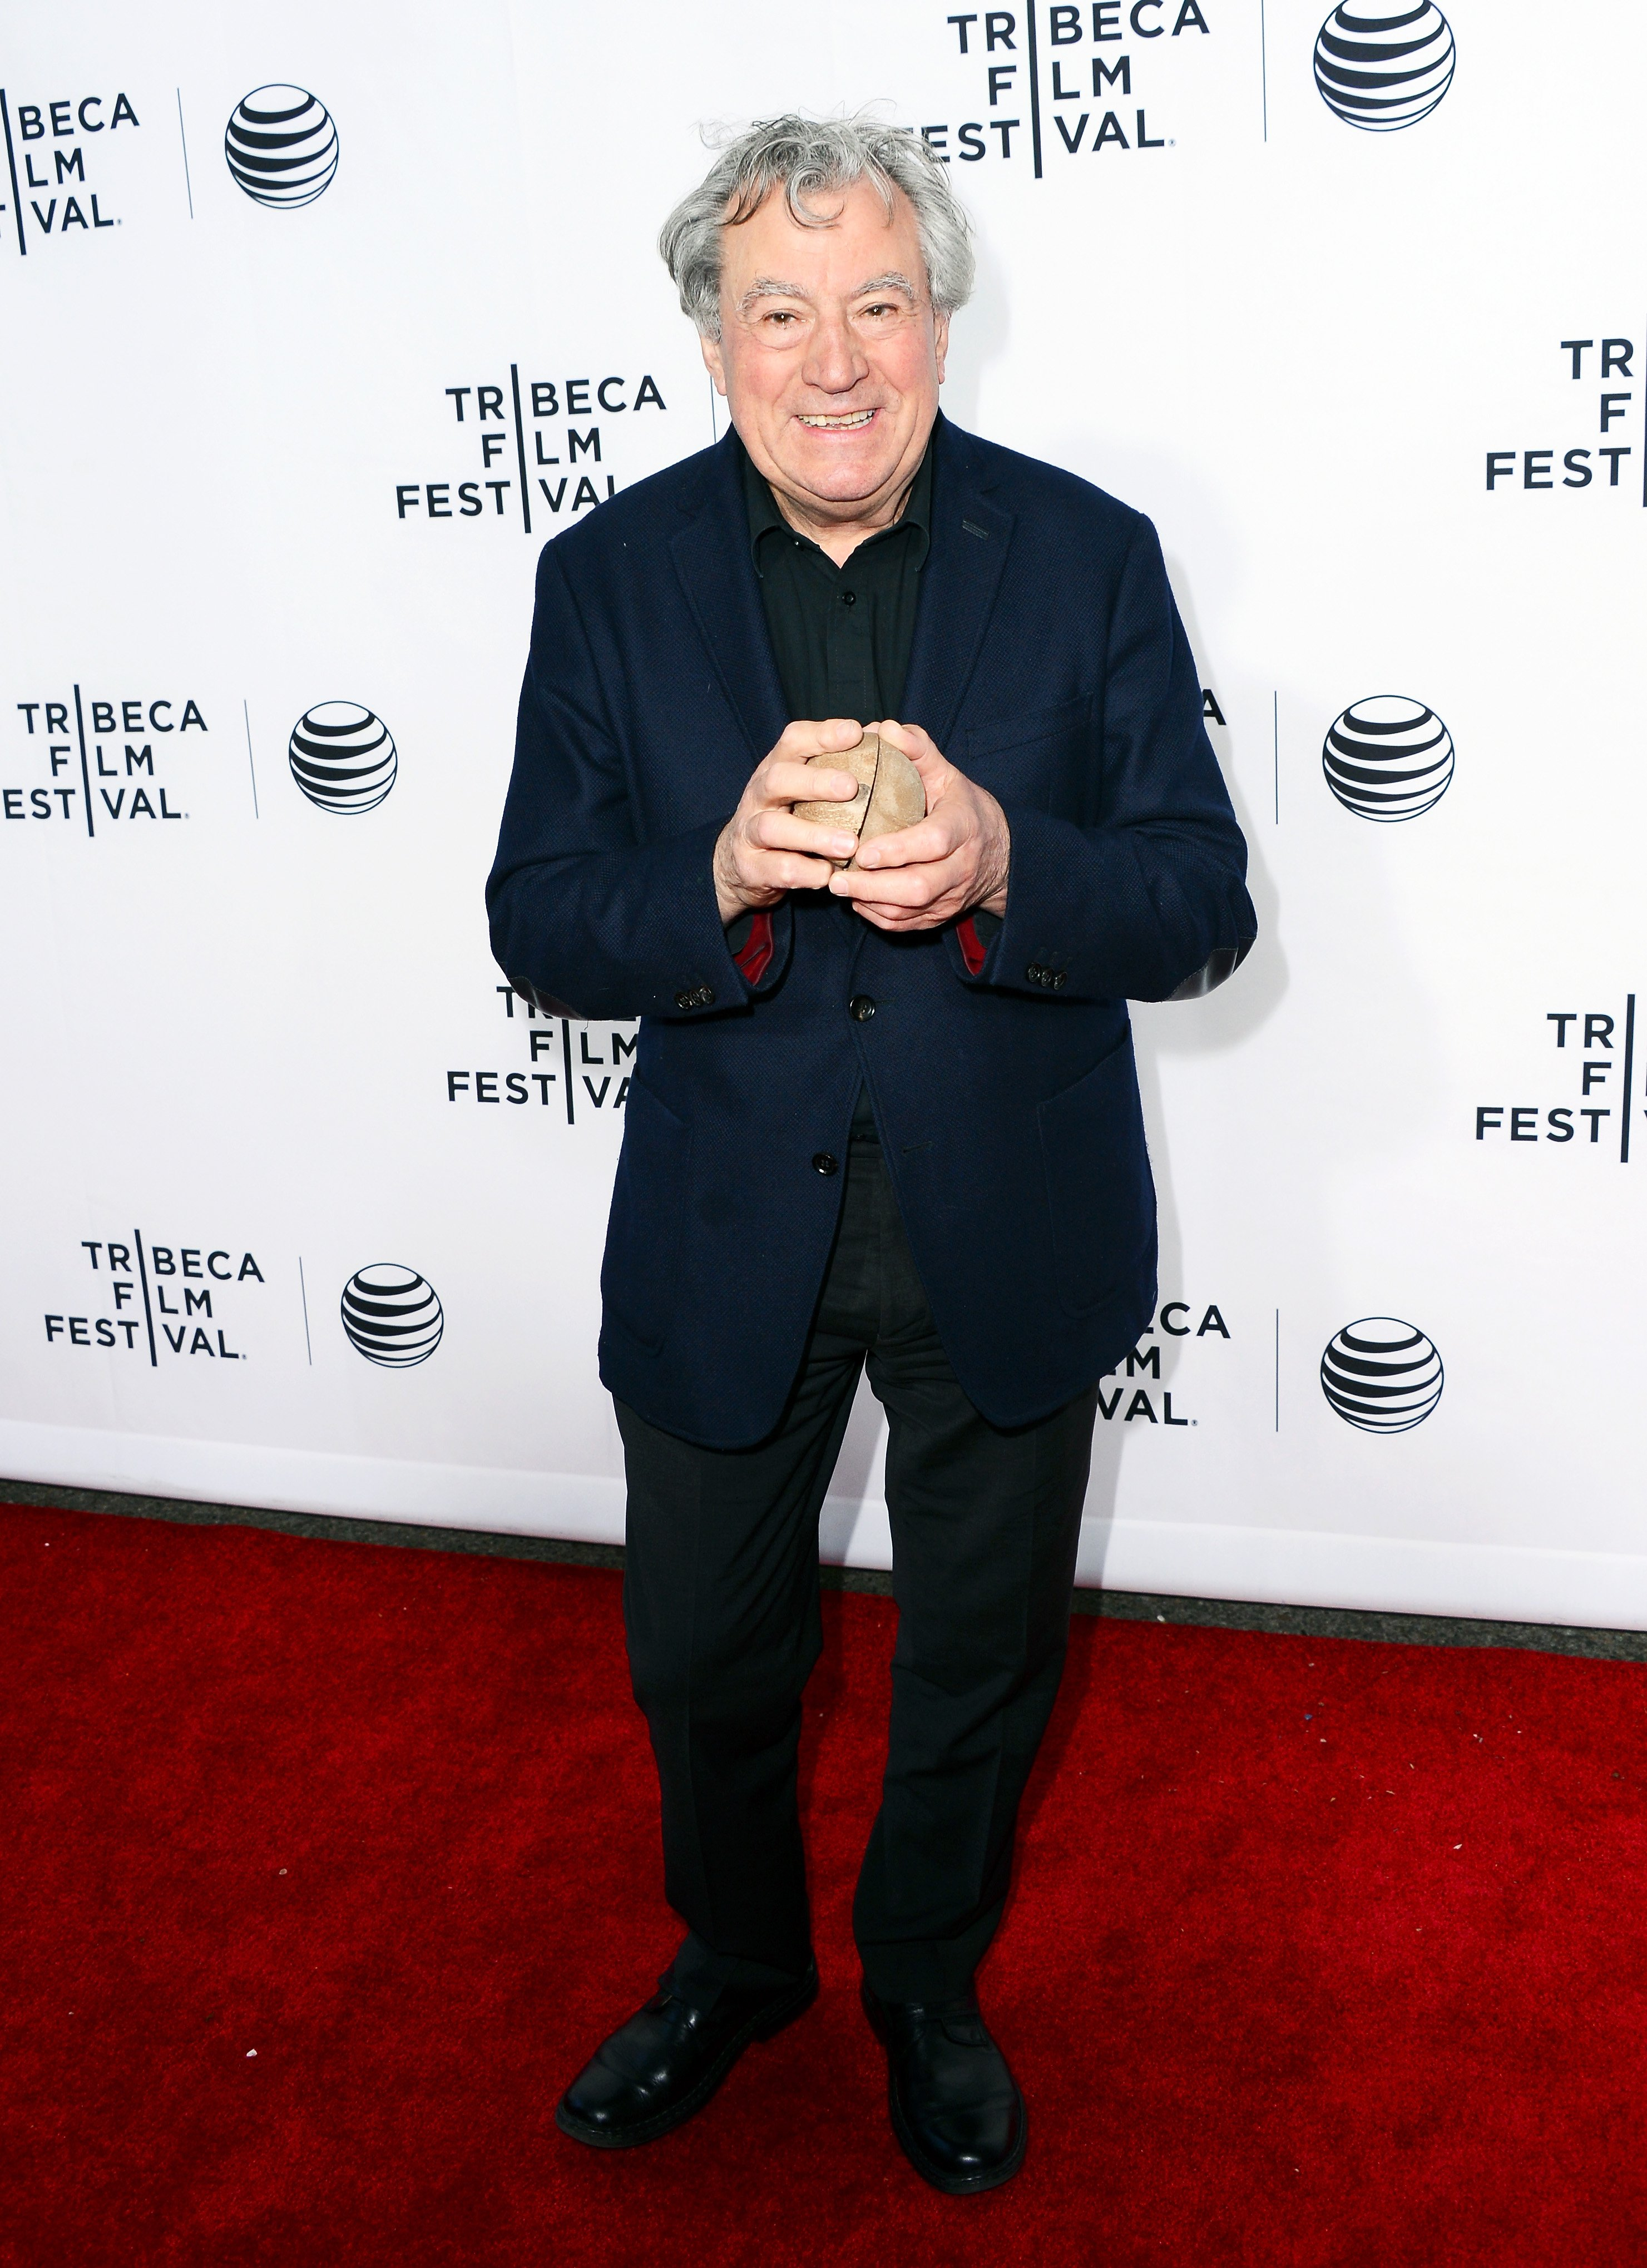 Terry Jones attends the 'Monty Python And The Holy Grail' Special Screening during the 2015 Tribeca Film Festival at Beacon Theatre on April 24, 2015 in New York City